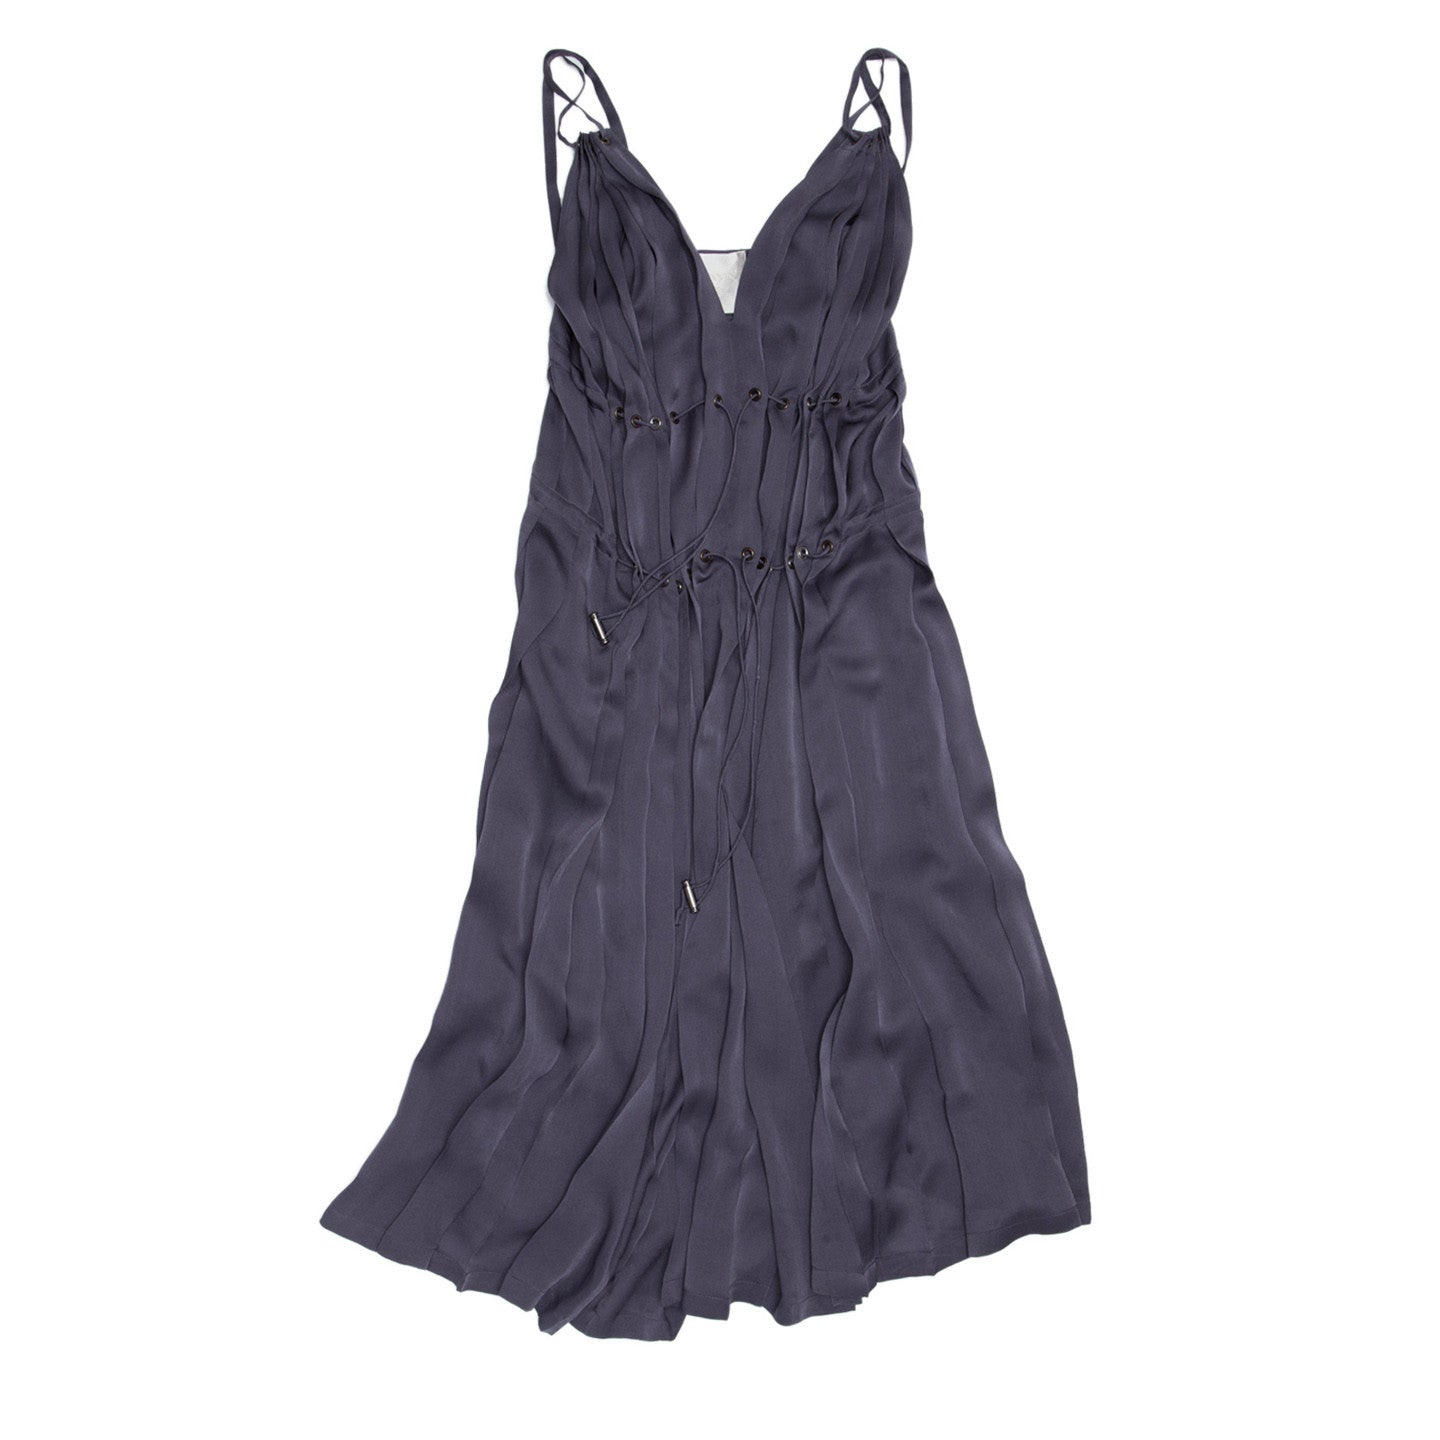 Find an authentic preowned Lanvin Lilac Silk Pleated Dress, size 36 (French) at BunnyJack, where a portion of every sale goes to charity.